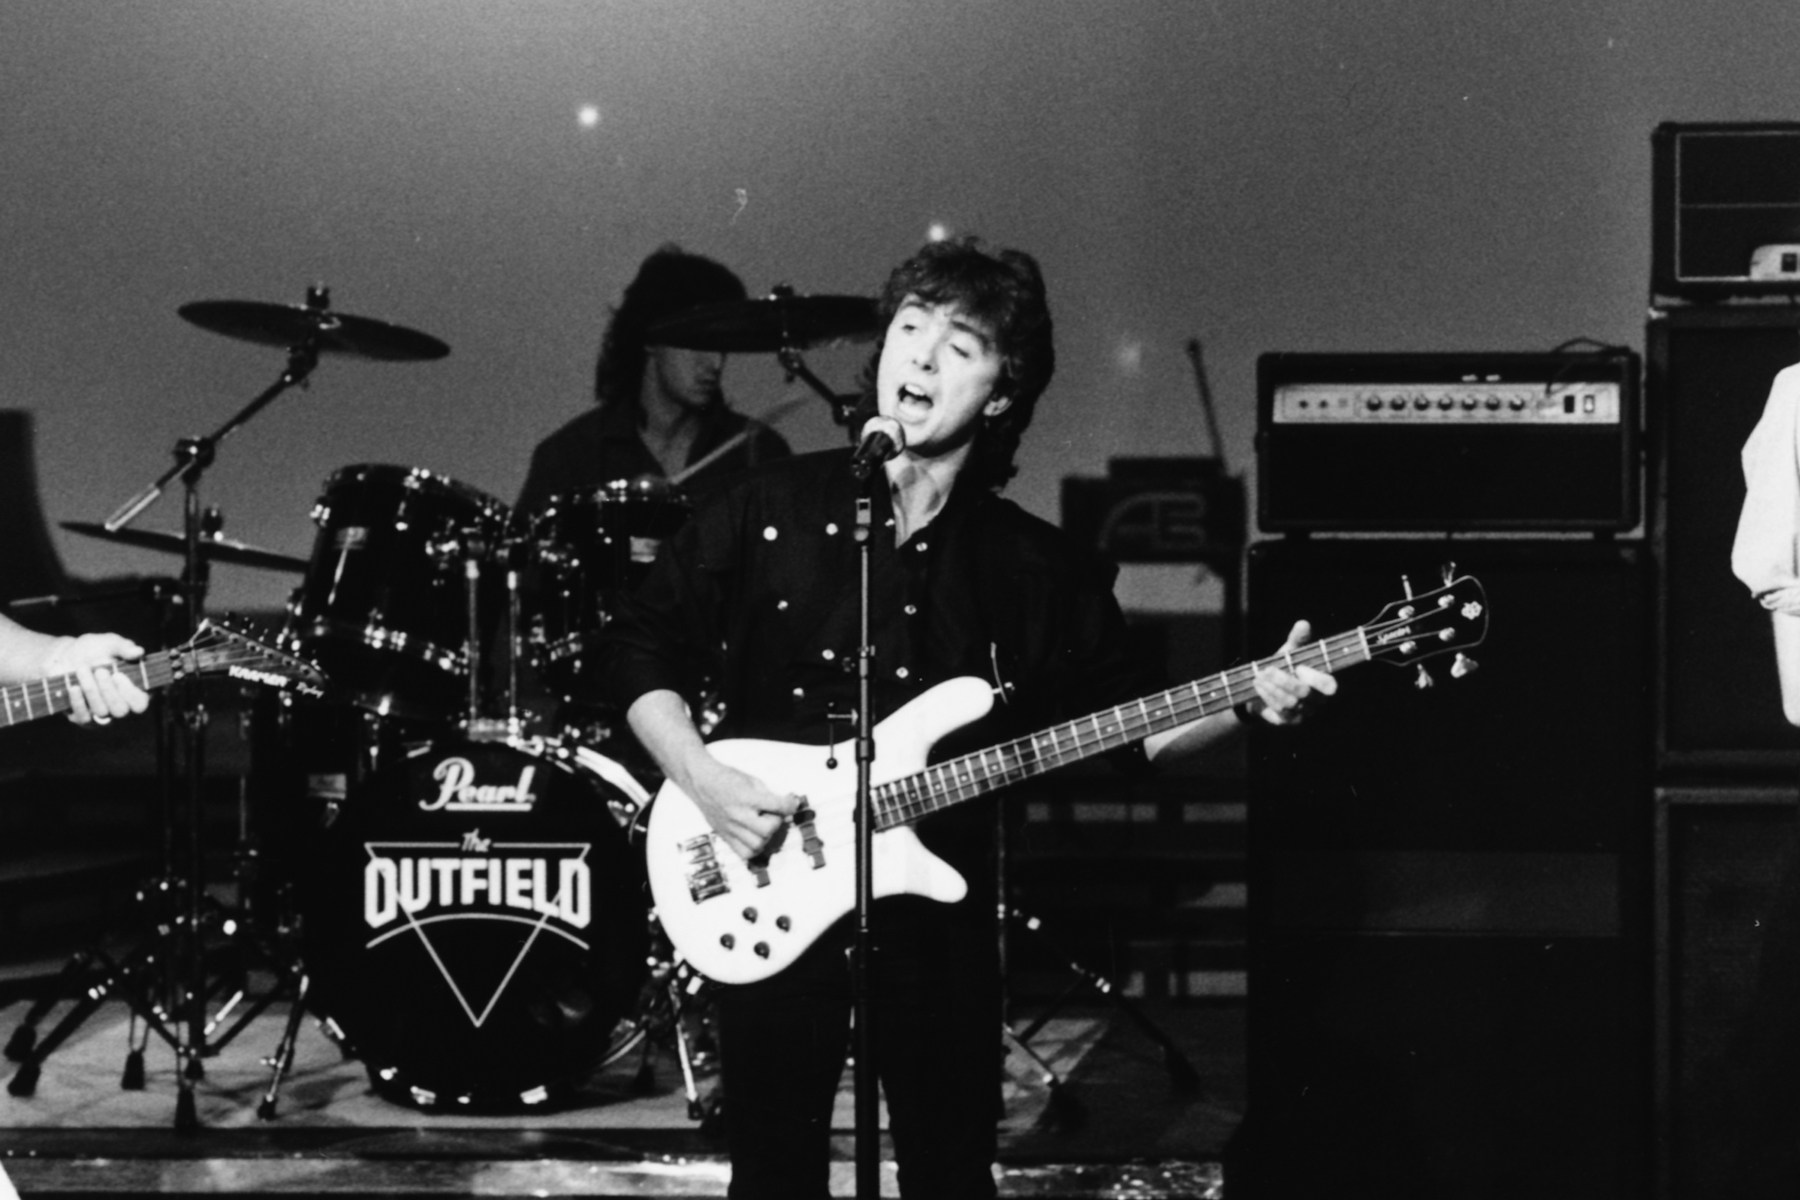 Band 'The Outfield' on stage; (L-R) John Spinks, Tony Lewis and Alan Shadrake, May 28th 1986. (Photo by Dave Hogan/Getty Images) *** Local Caption ***